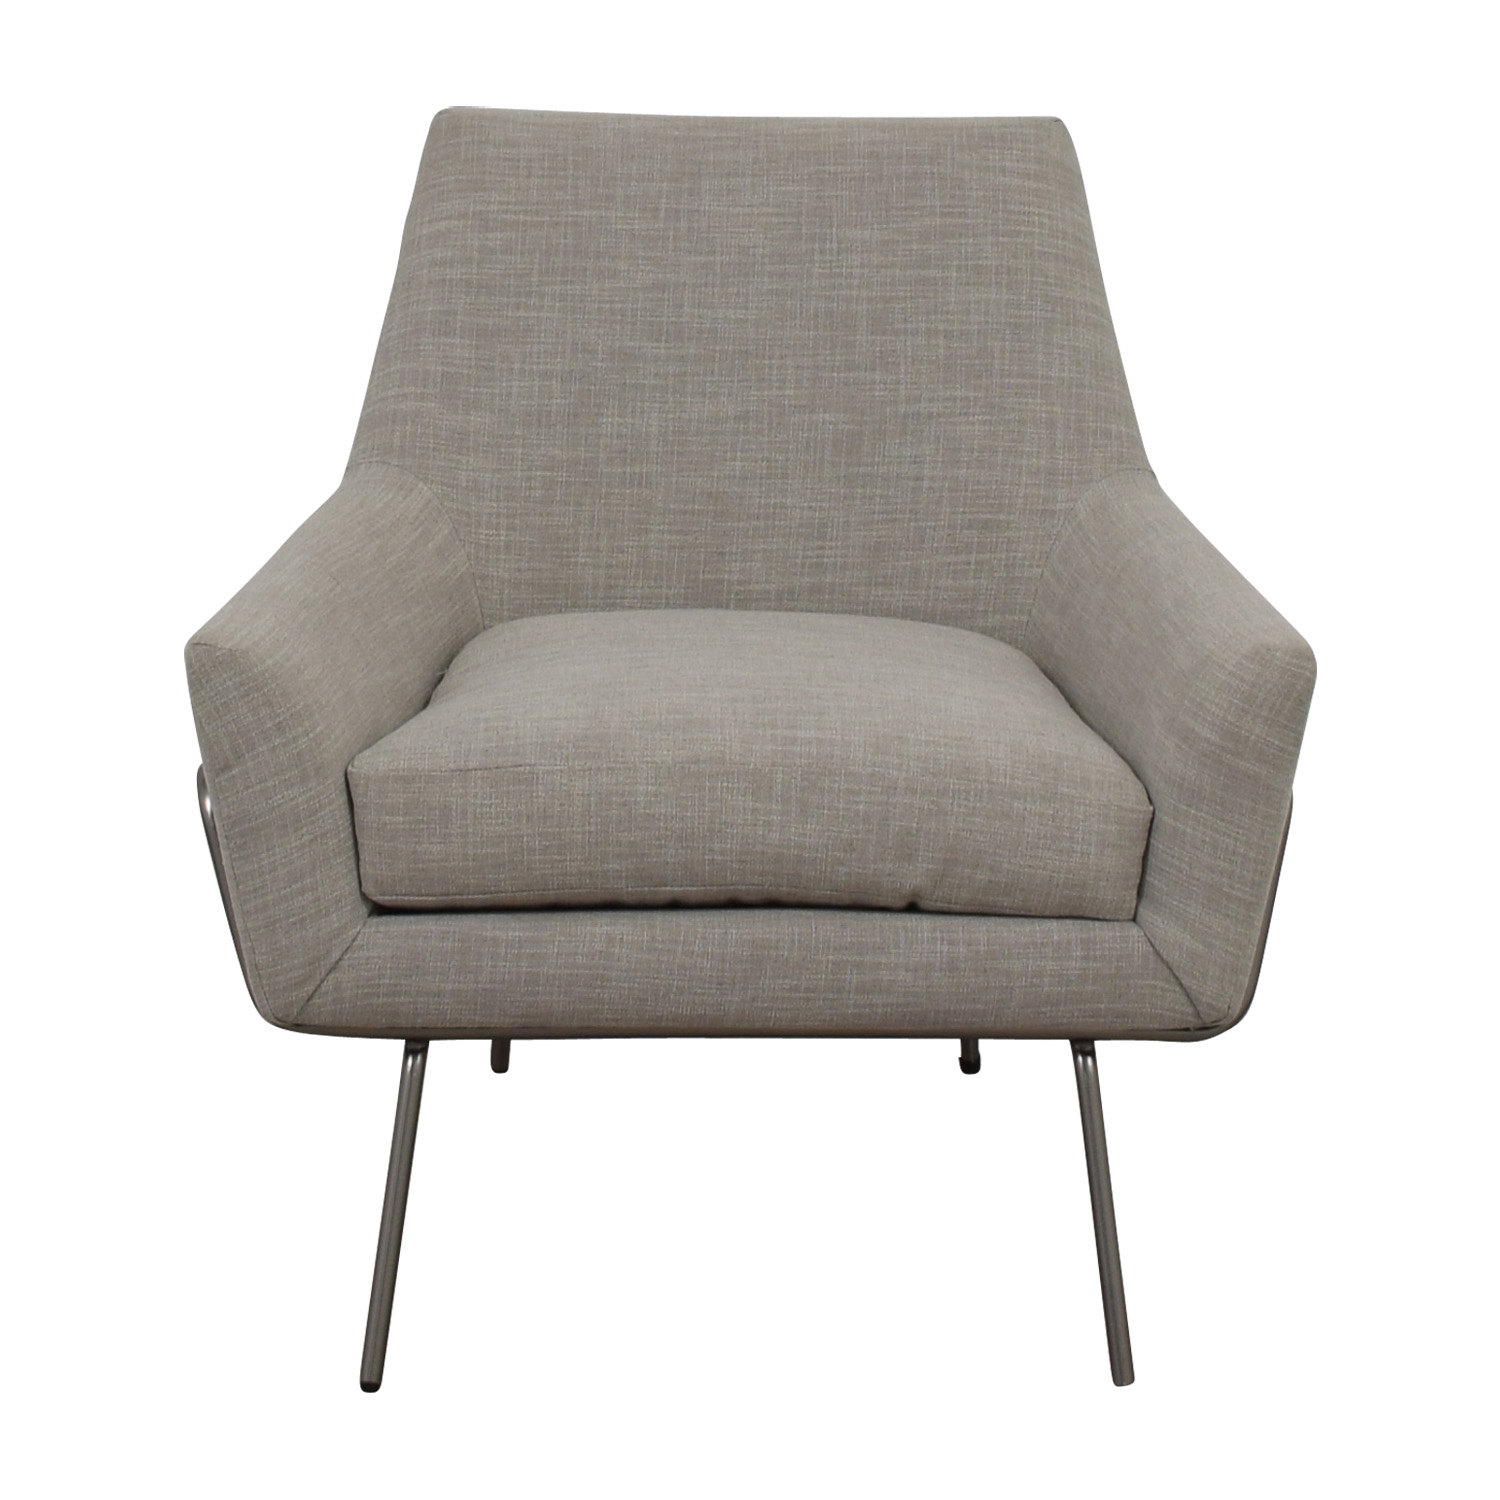 West Elm West Elm Lucas Grey Wire Base Chair price